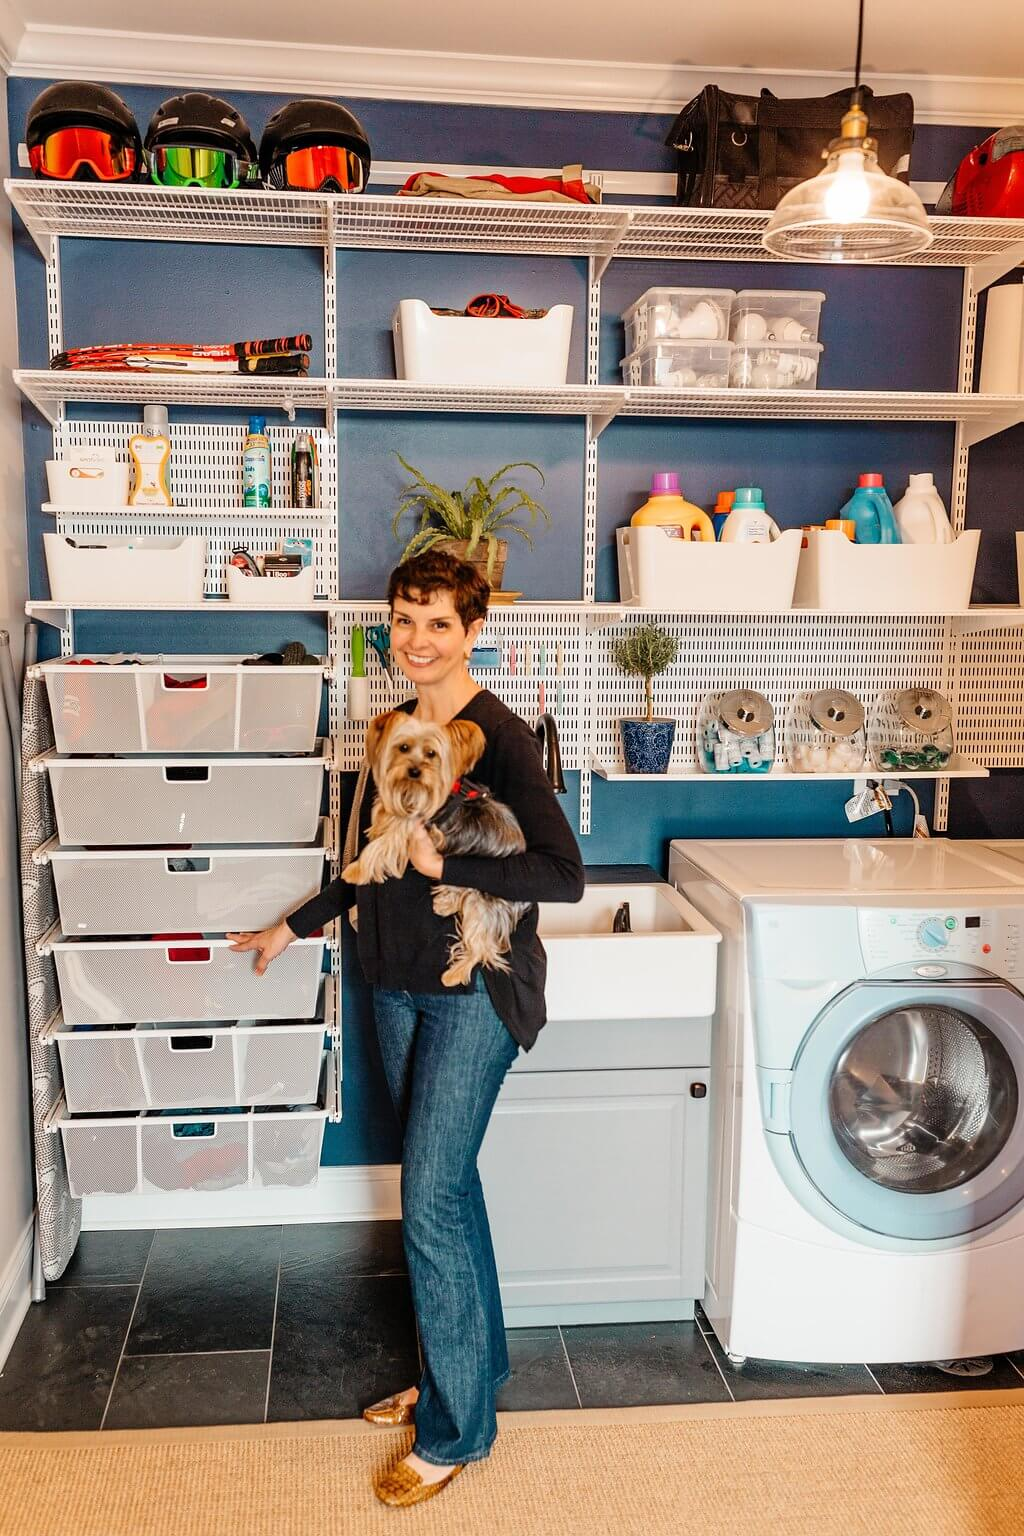 When your laundry room is so functional and pretty you even start enjoying the laundry!